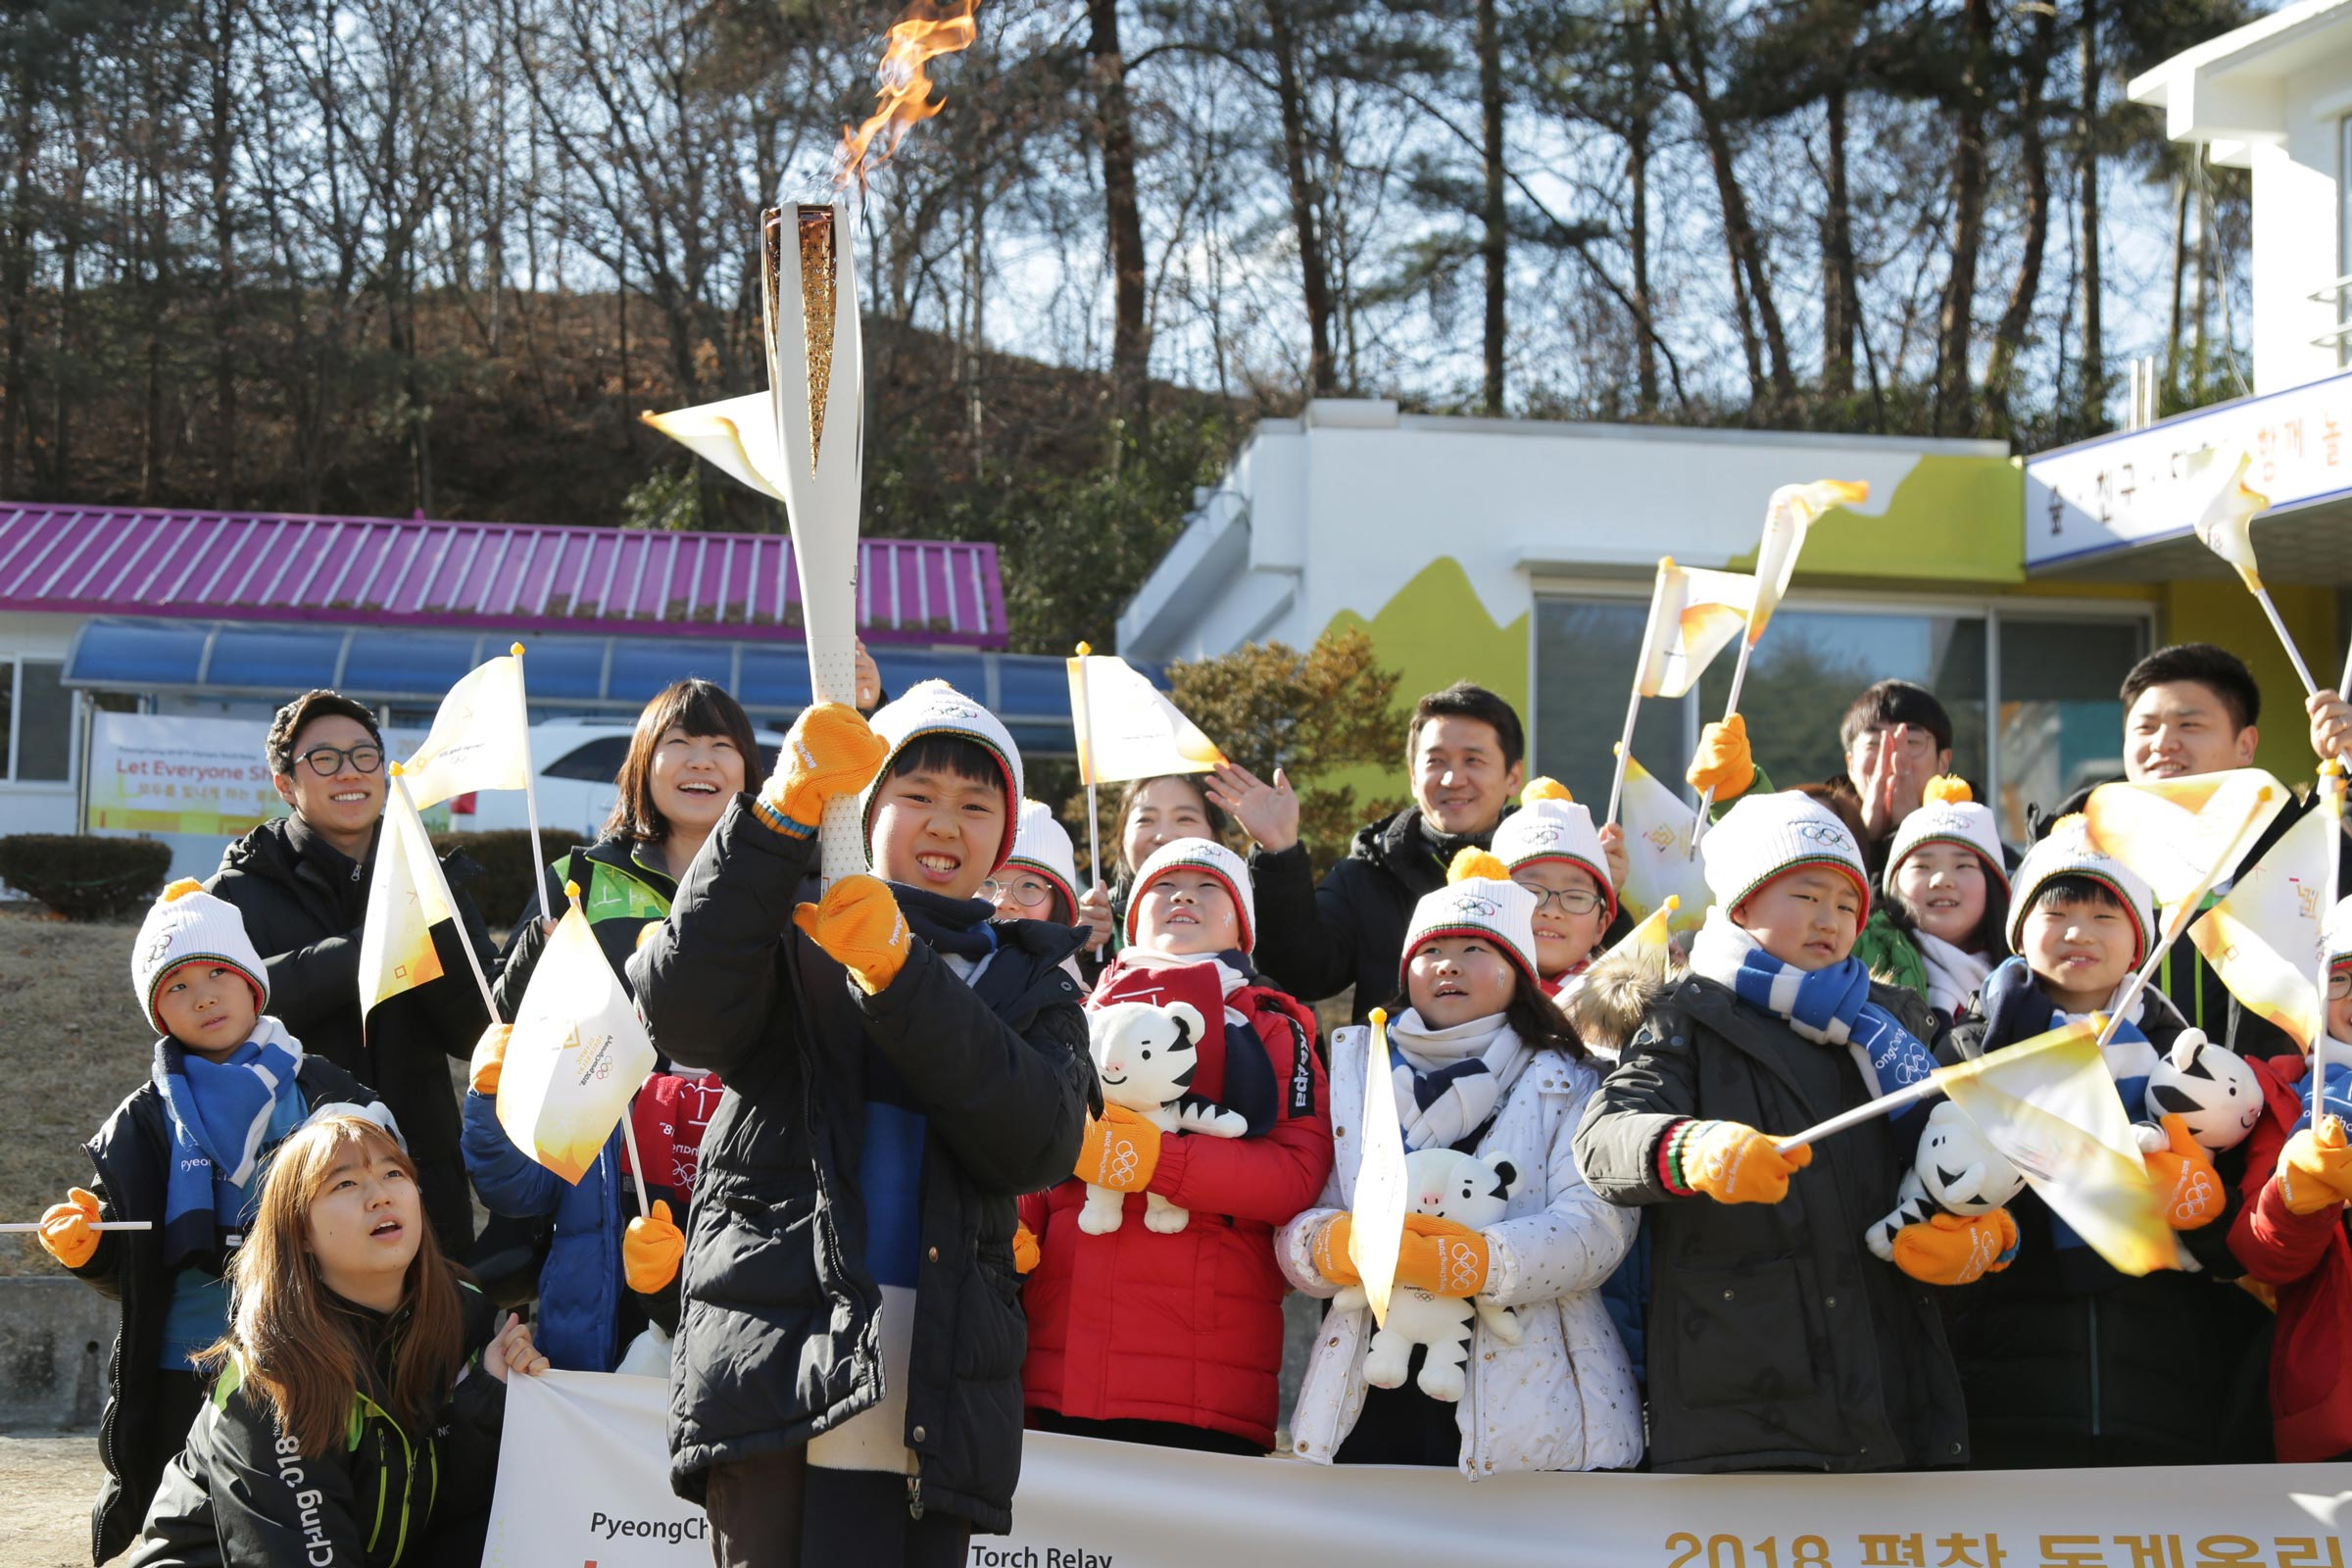 PyeongChang 2018 Olympic Torch Relay - Day 93